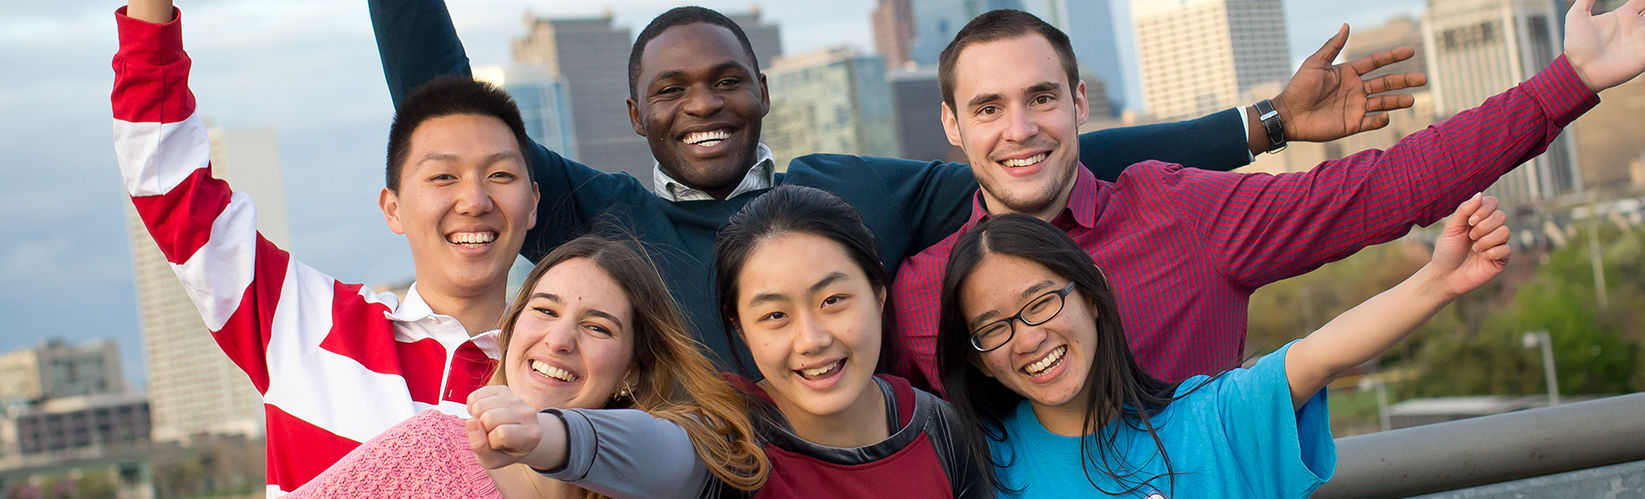 Image of students together by Philadelphia skyline